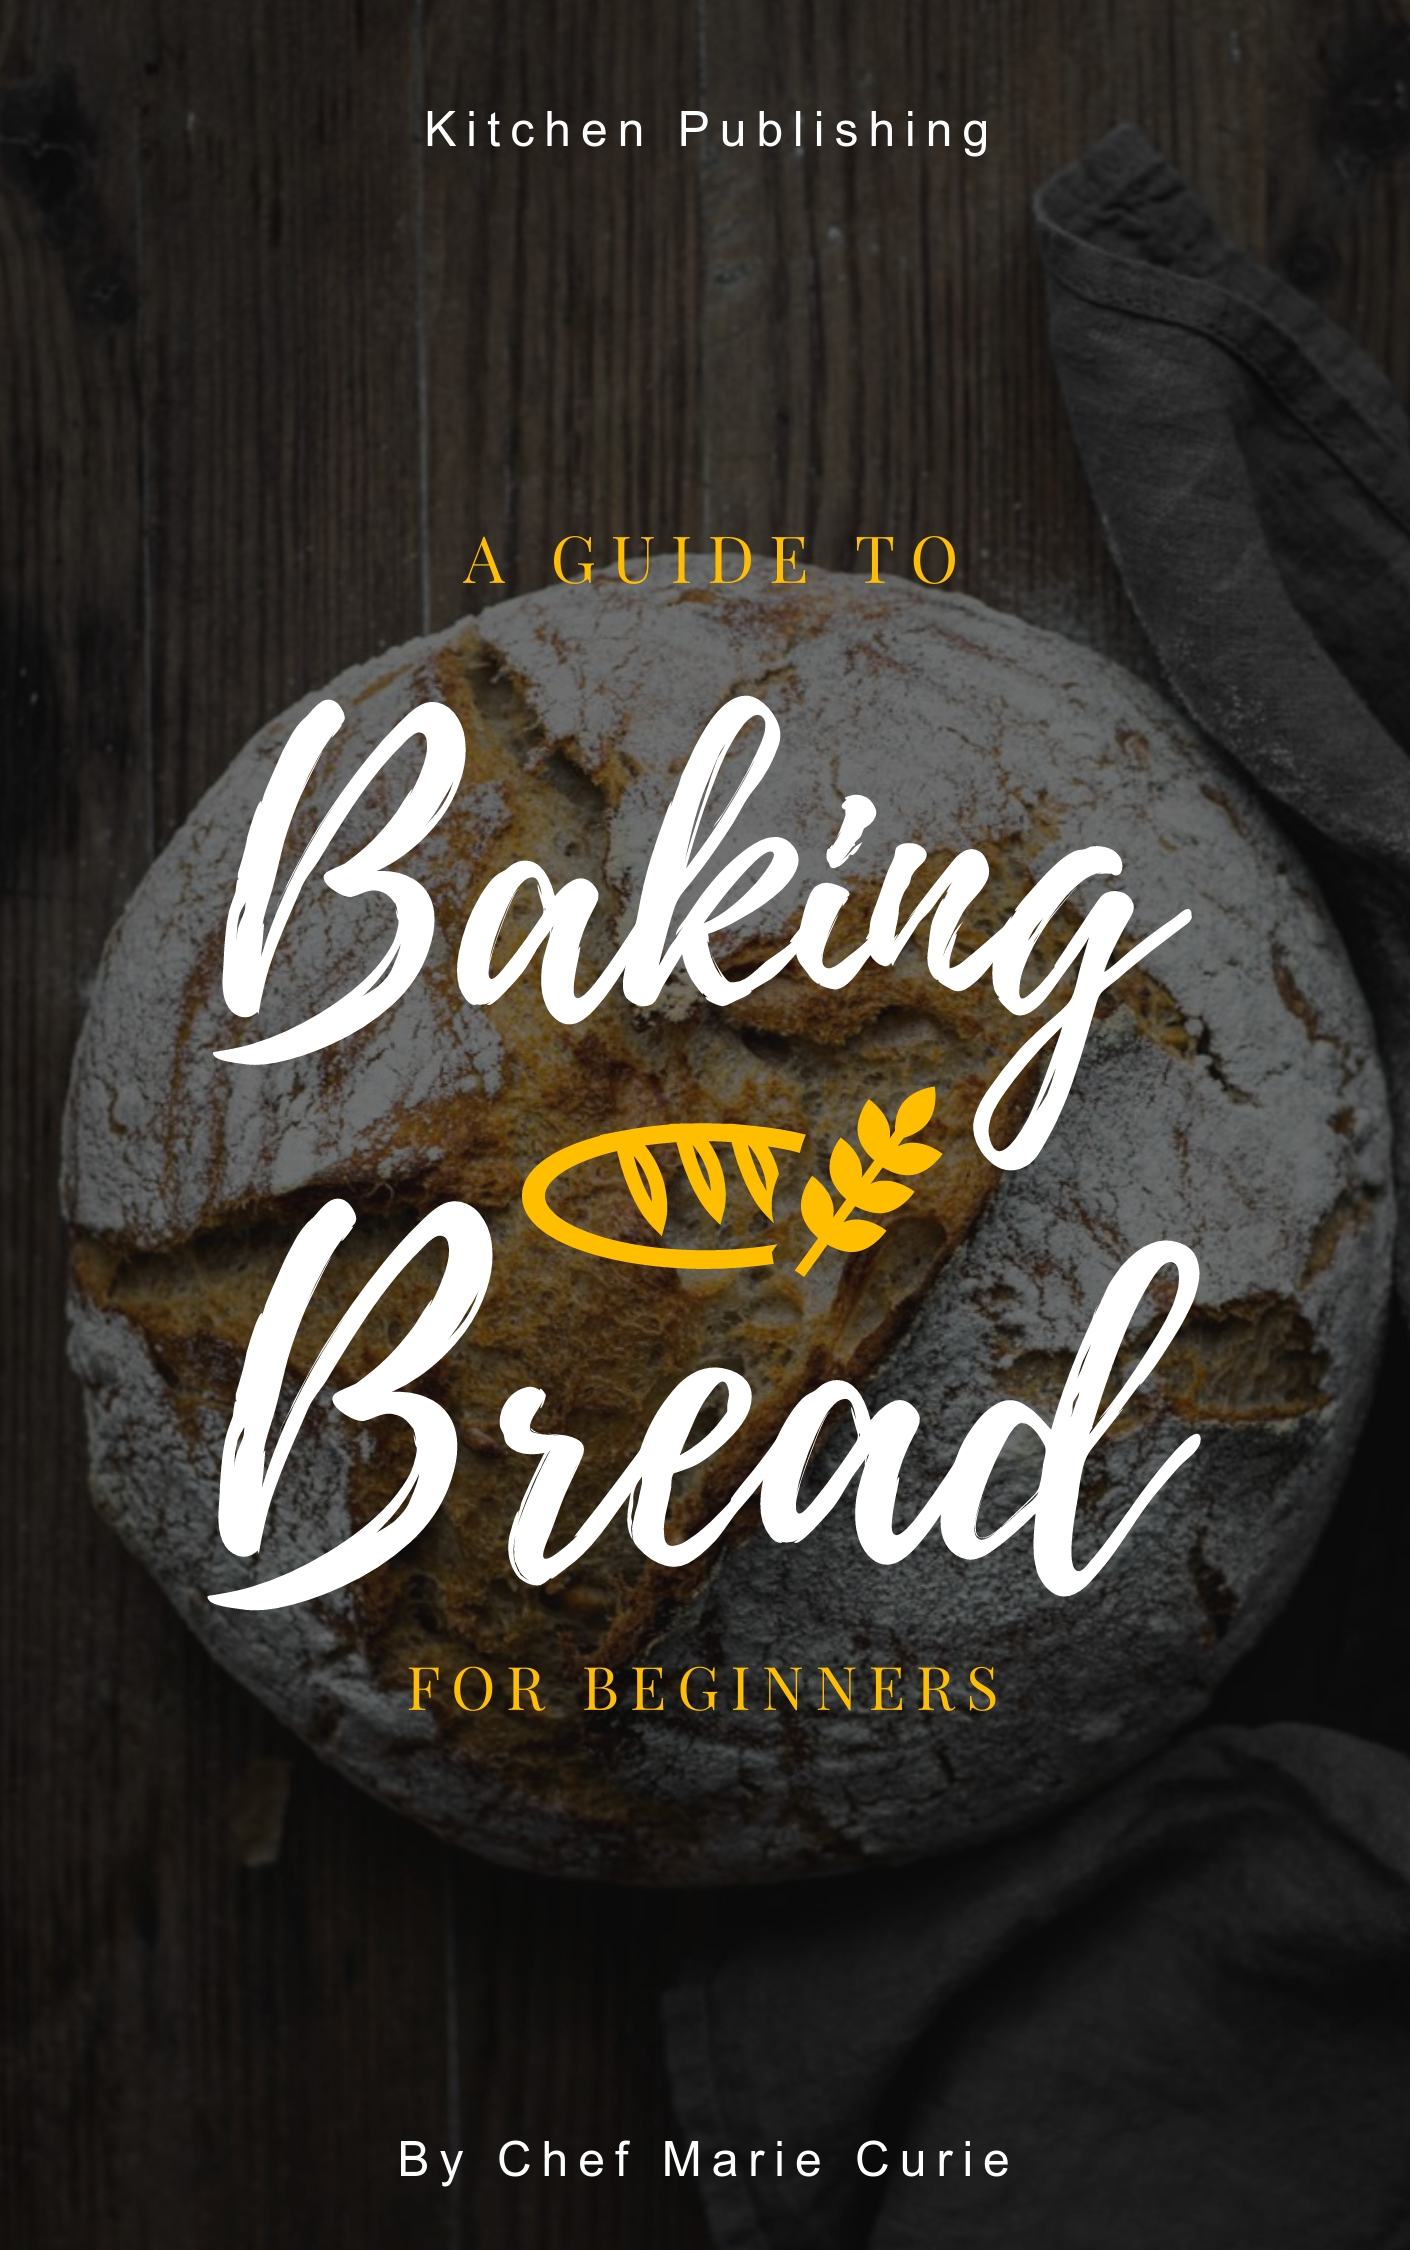 Bread Baking - Book Cover  Template